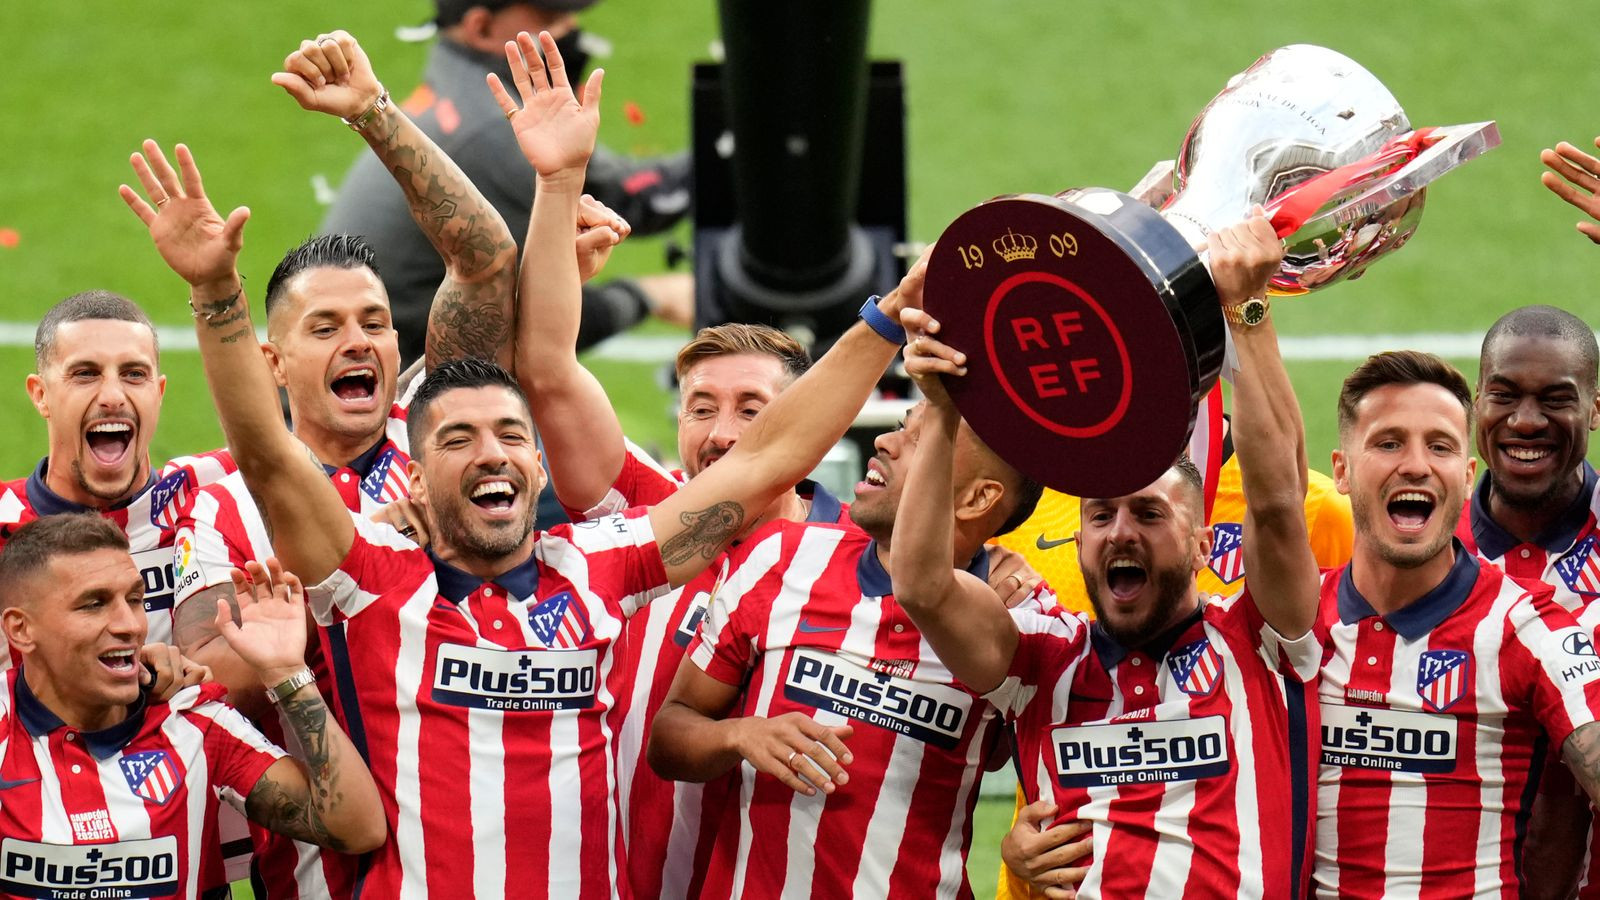 Diego Simeone signs new 3 year deal with Atletico Madrid after winning La Liga title